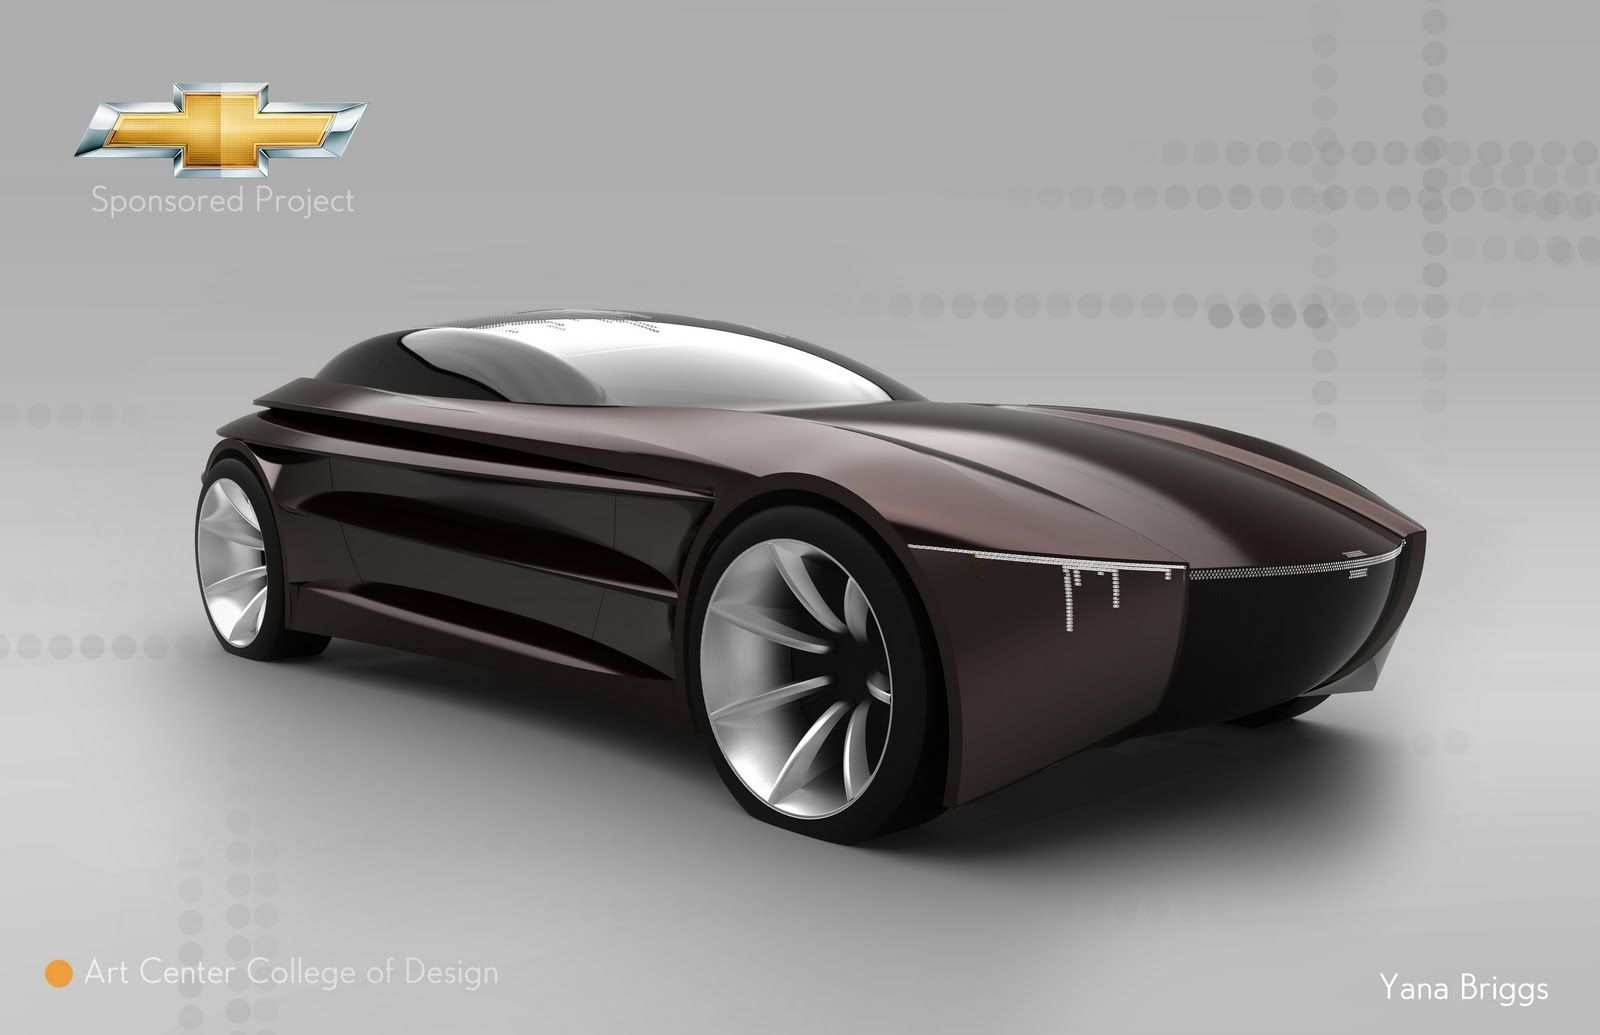 83 All New Chevrolet Concept Cars 2020 Spesification by Chevrolet Concept Cars 2020